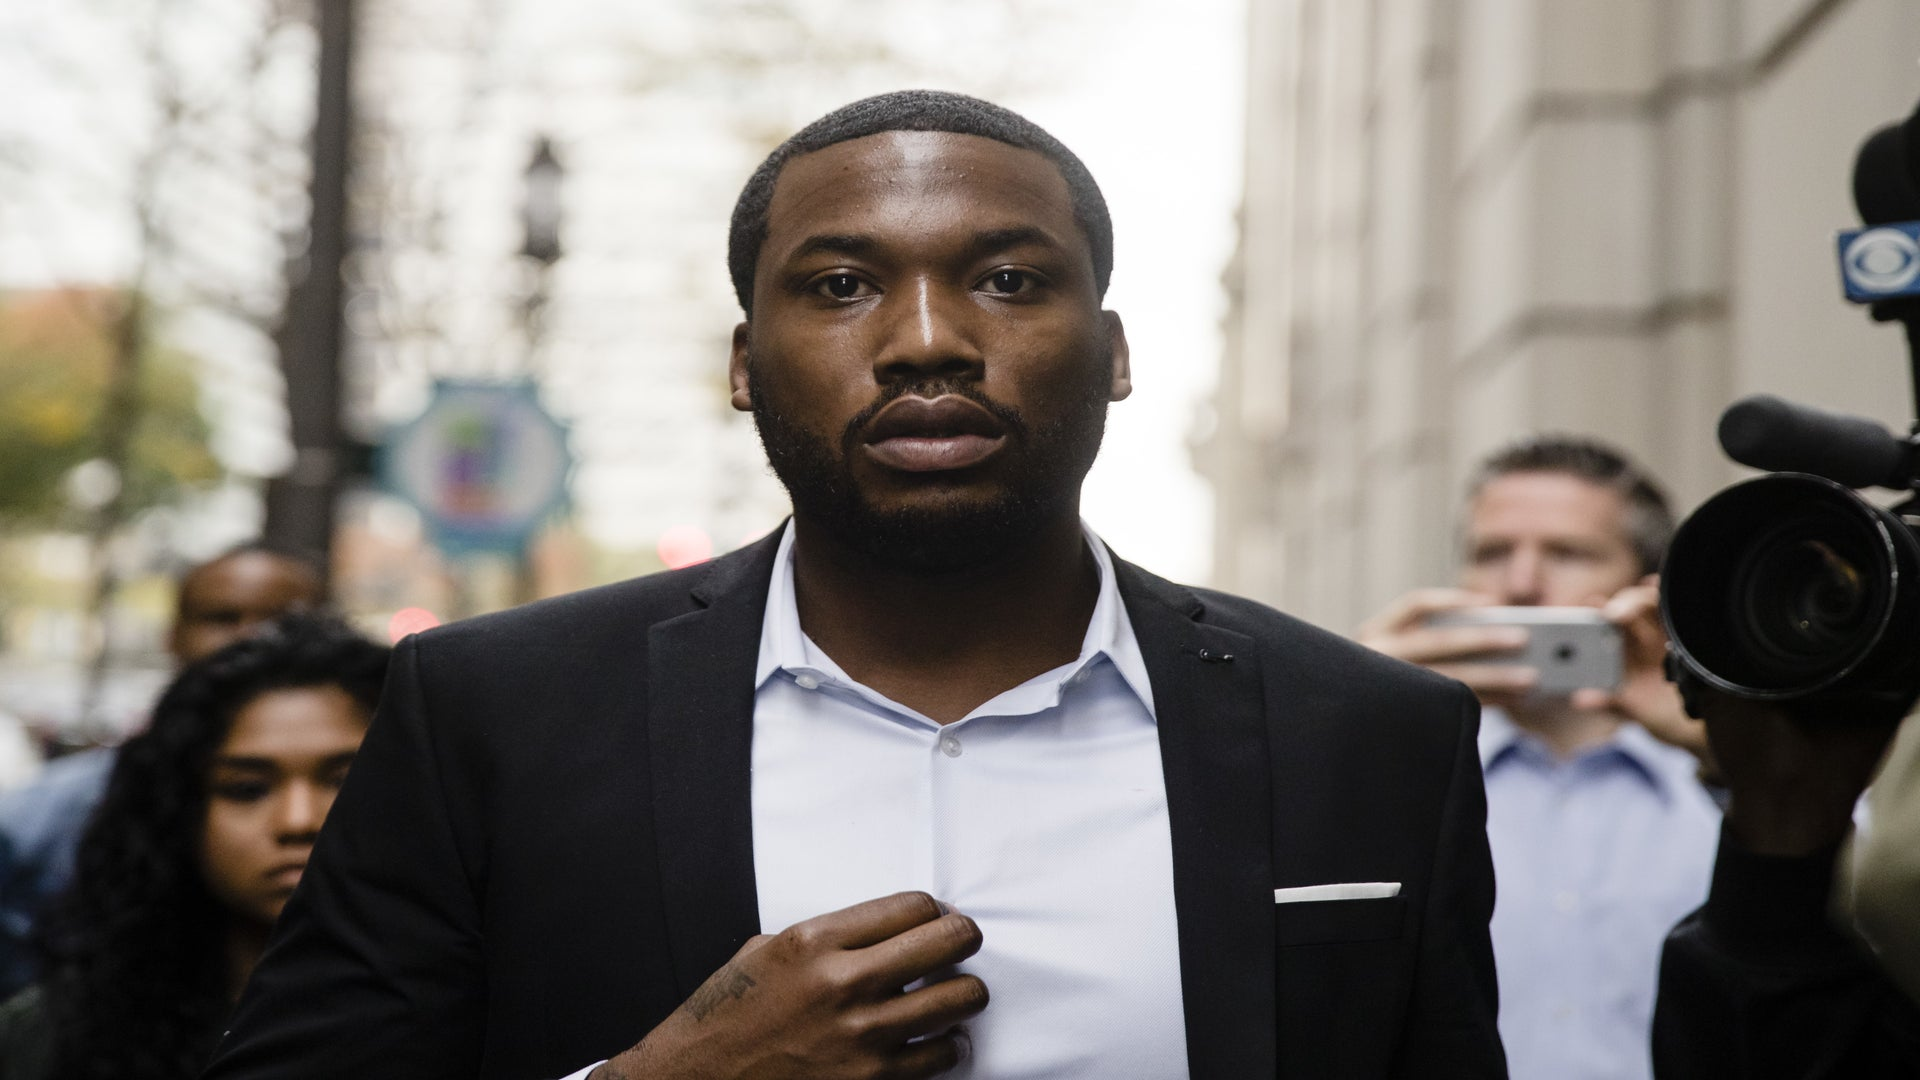 Meek Mill Pens Essay On The 'Broken' Criminal Justice System